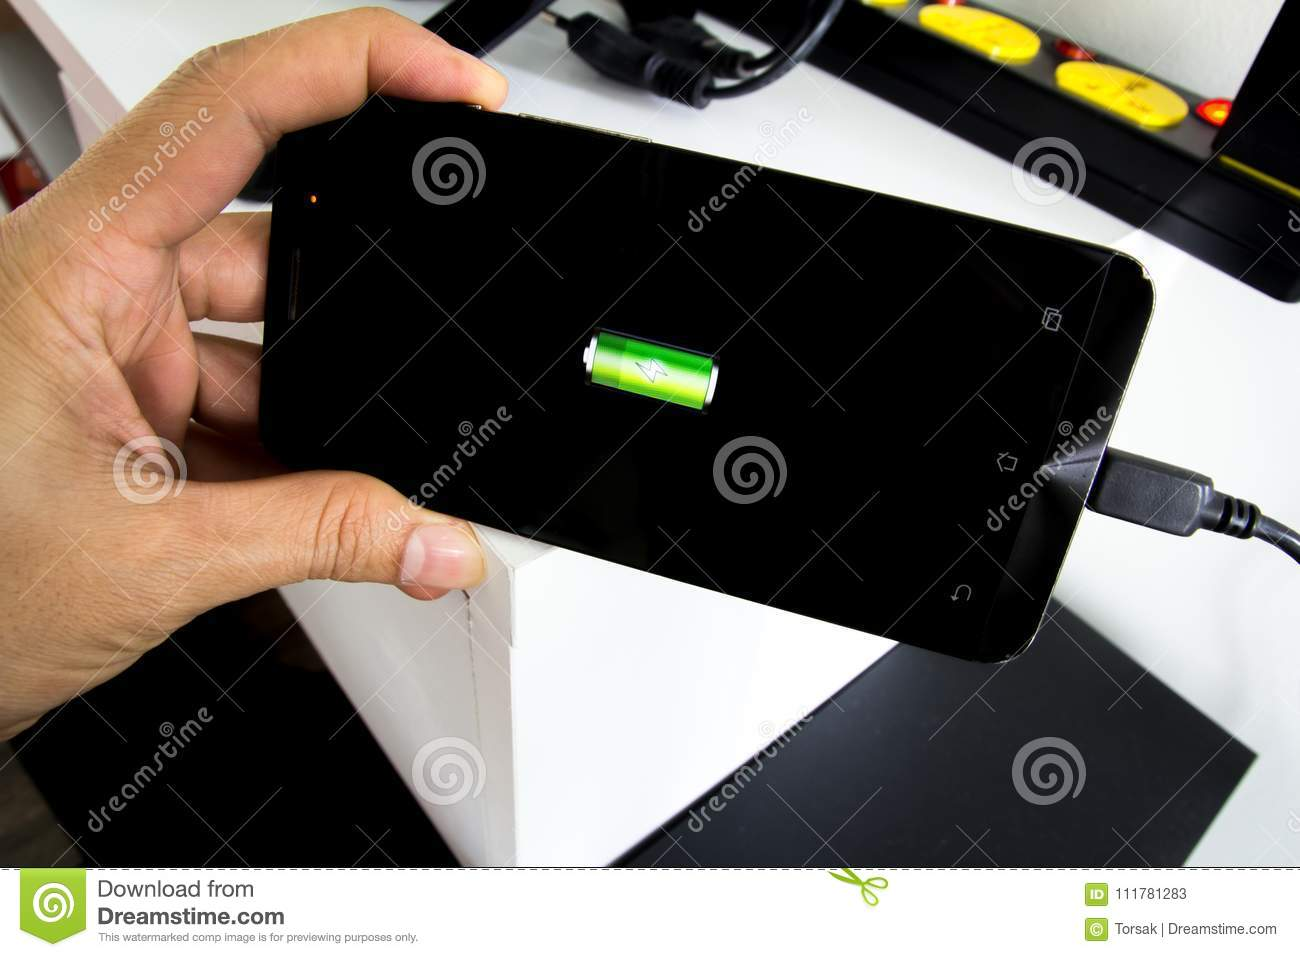 Charge the phone Smartphone